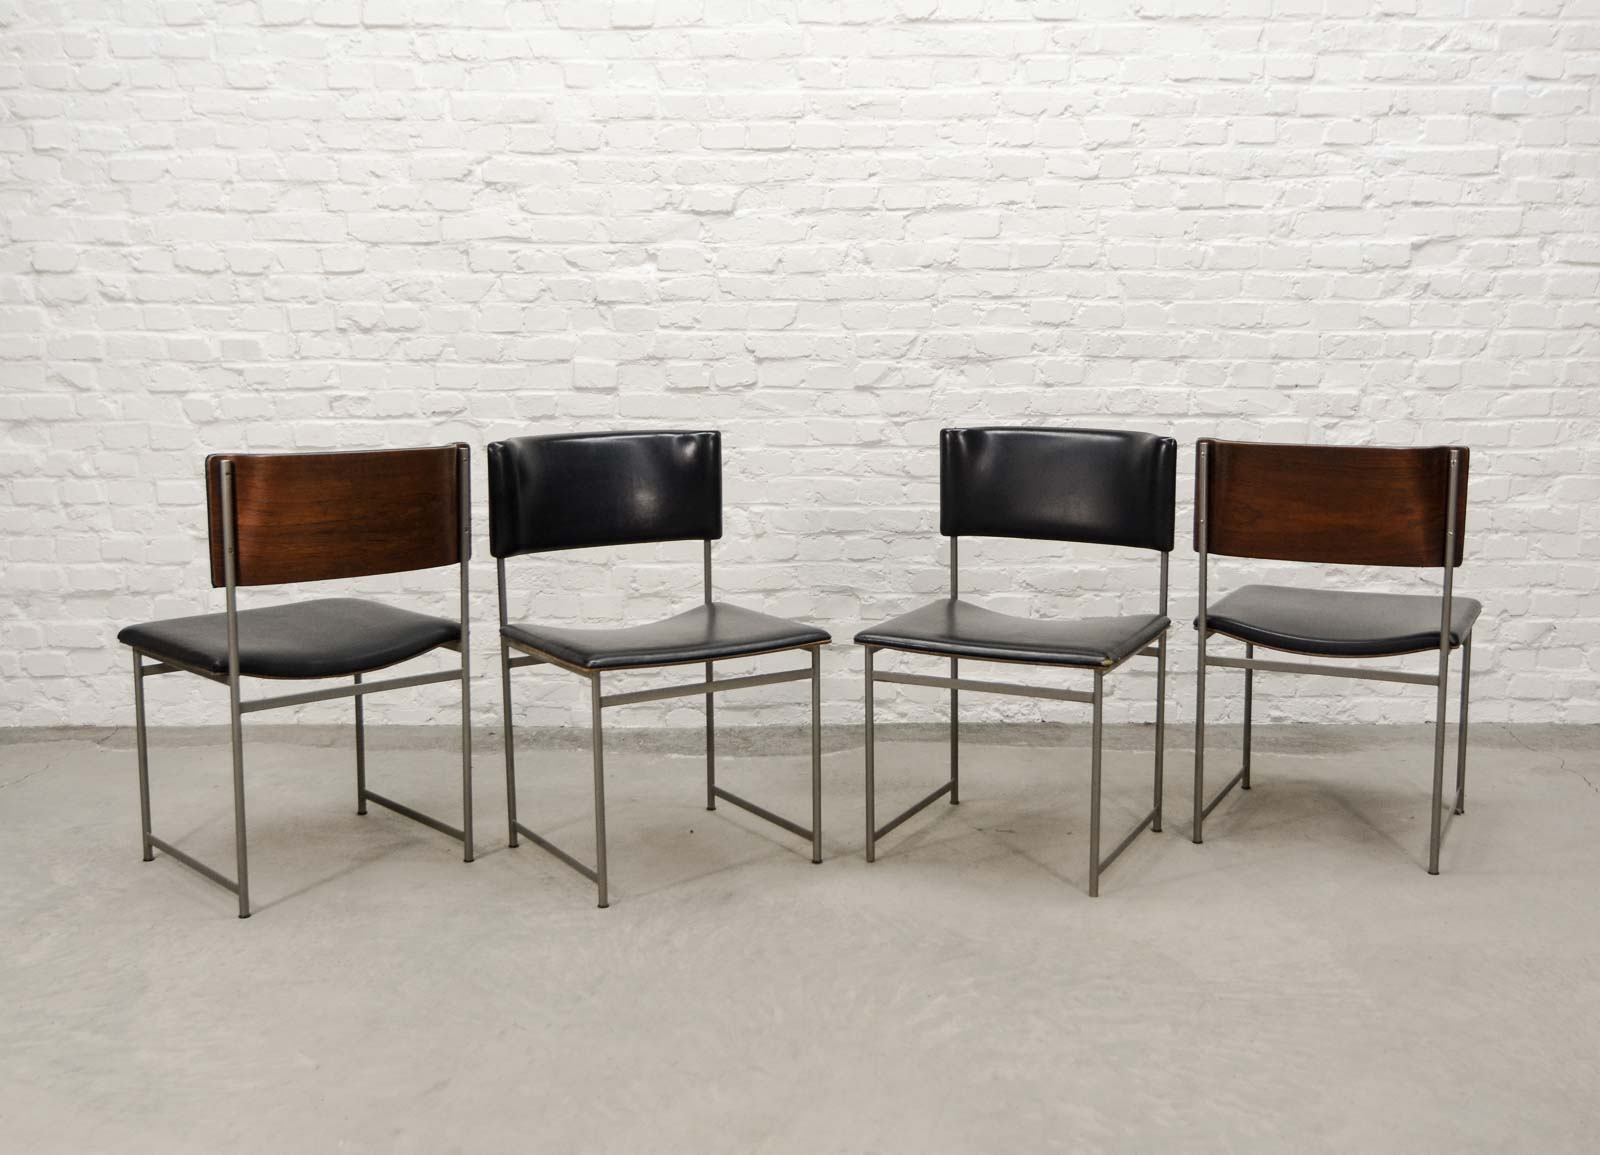 Set of Four Rosewood and Leatherette Dining Chairs by Cees Braakman for Pastoe 1960s & Set of Four Rosewood and Leatherette Dining Chairs by Cees Braakman ...